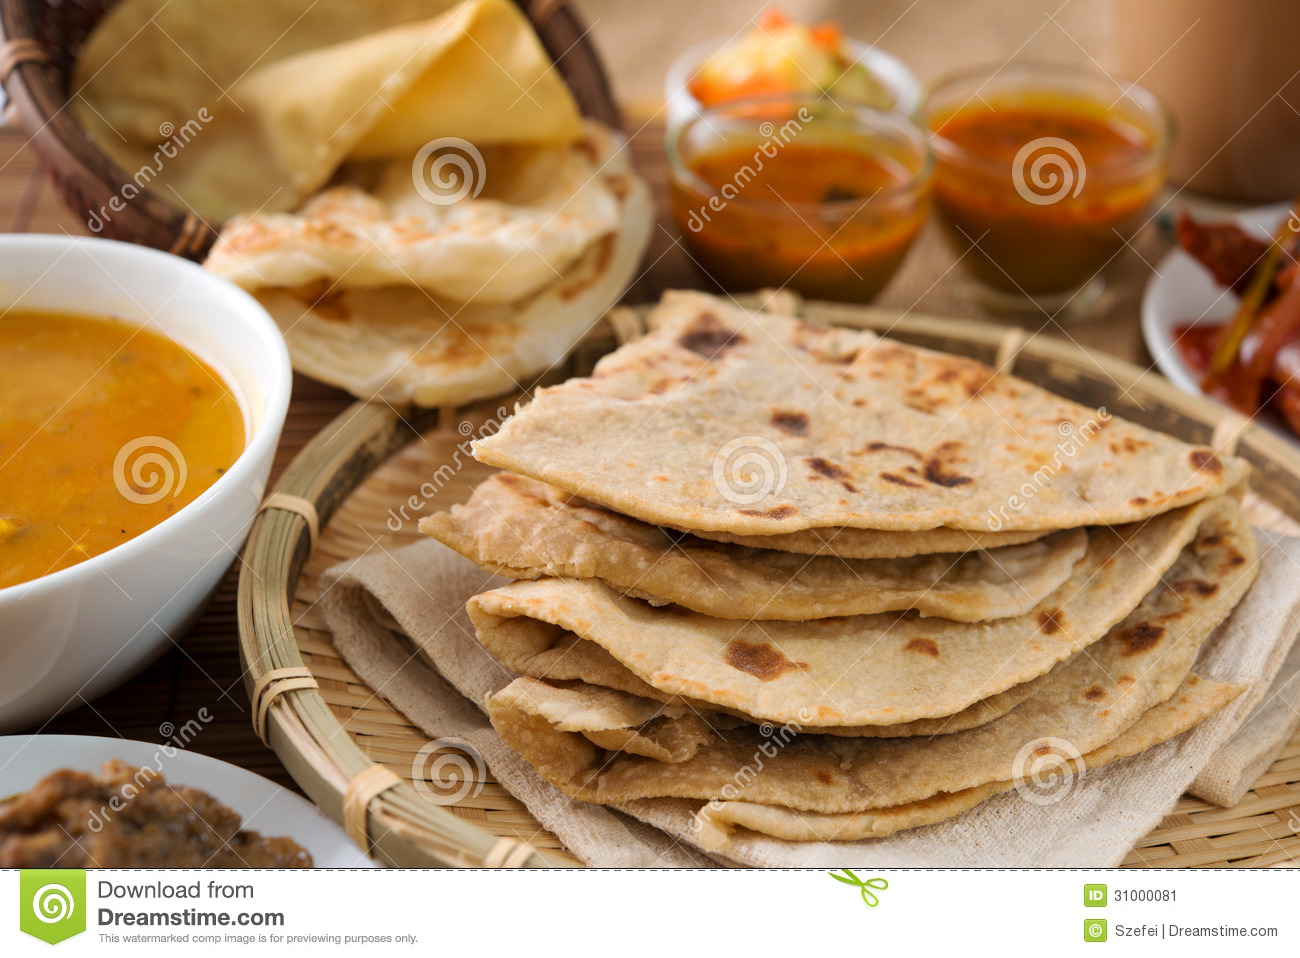 Chapati or Flat bread, roti canai, Indian food, made from wheat flour ...